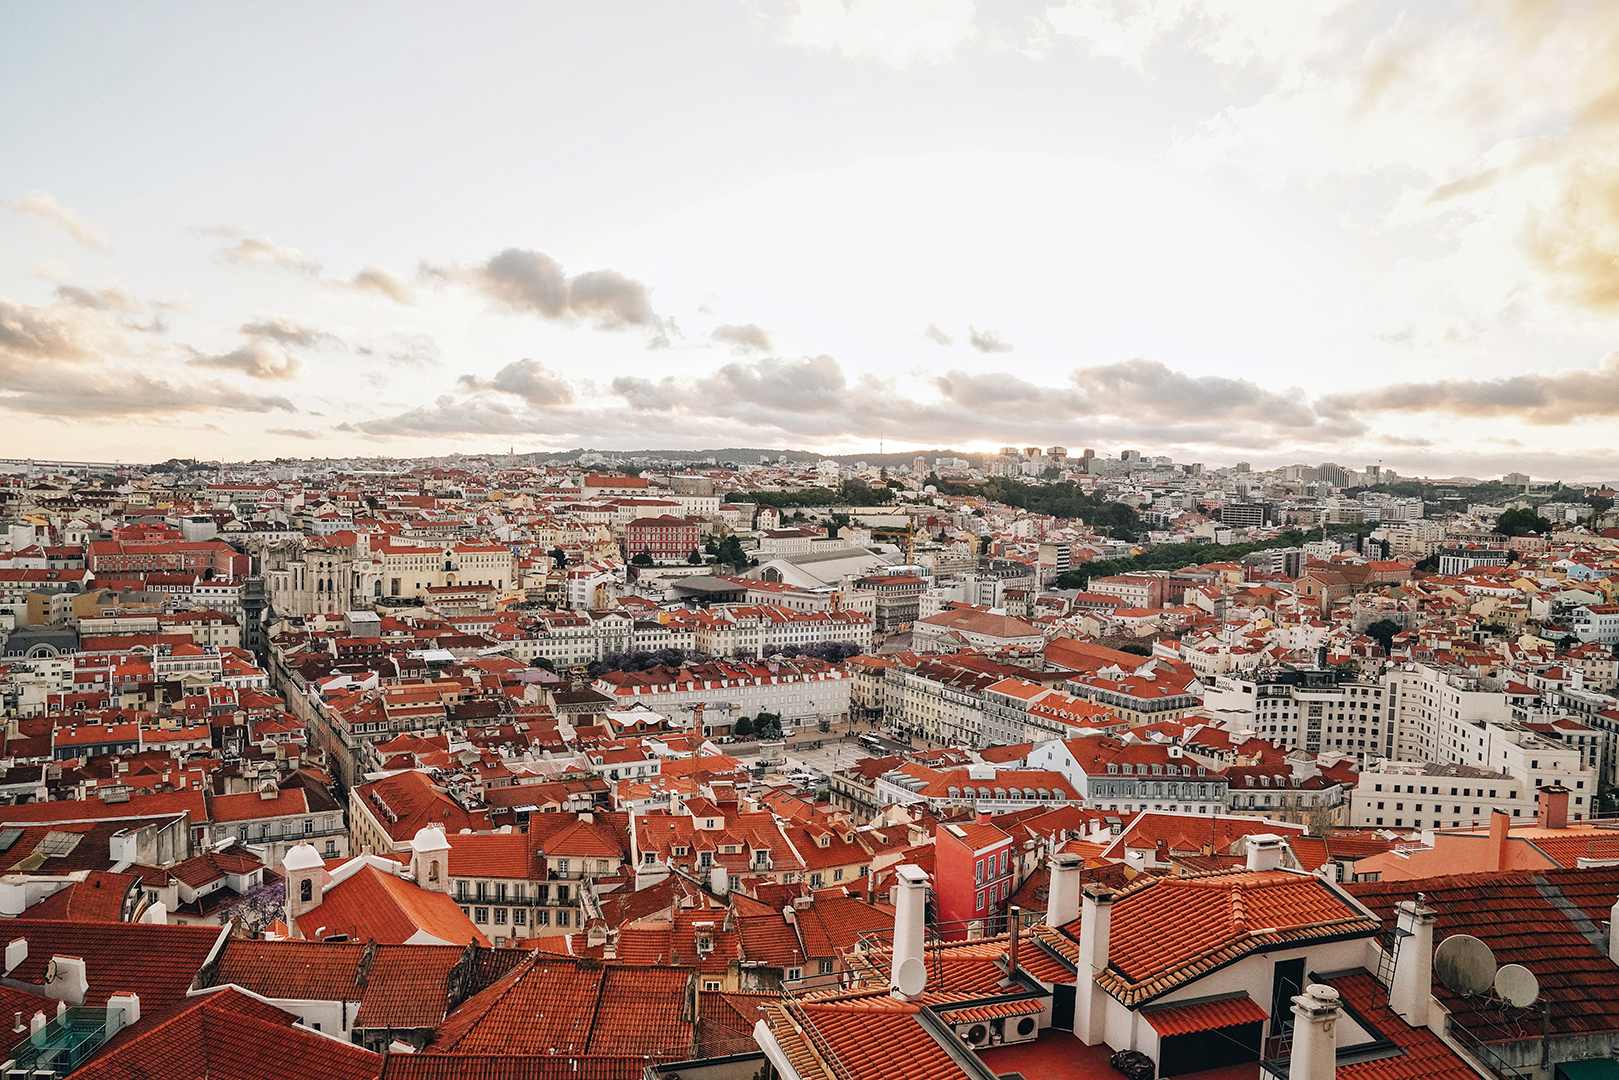 Sunset over this beautiful city, Lisbon